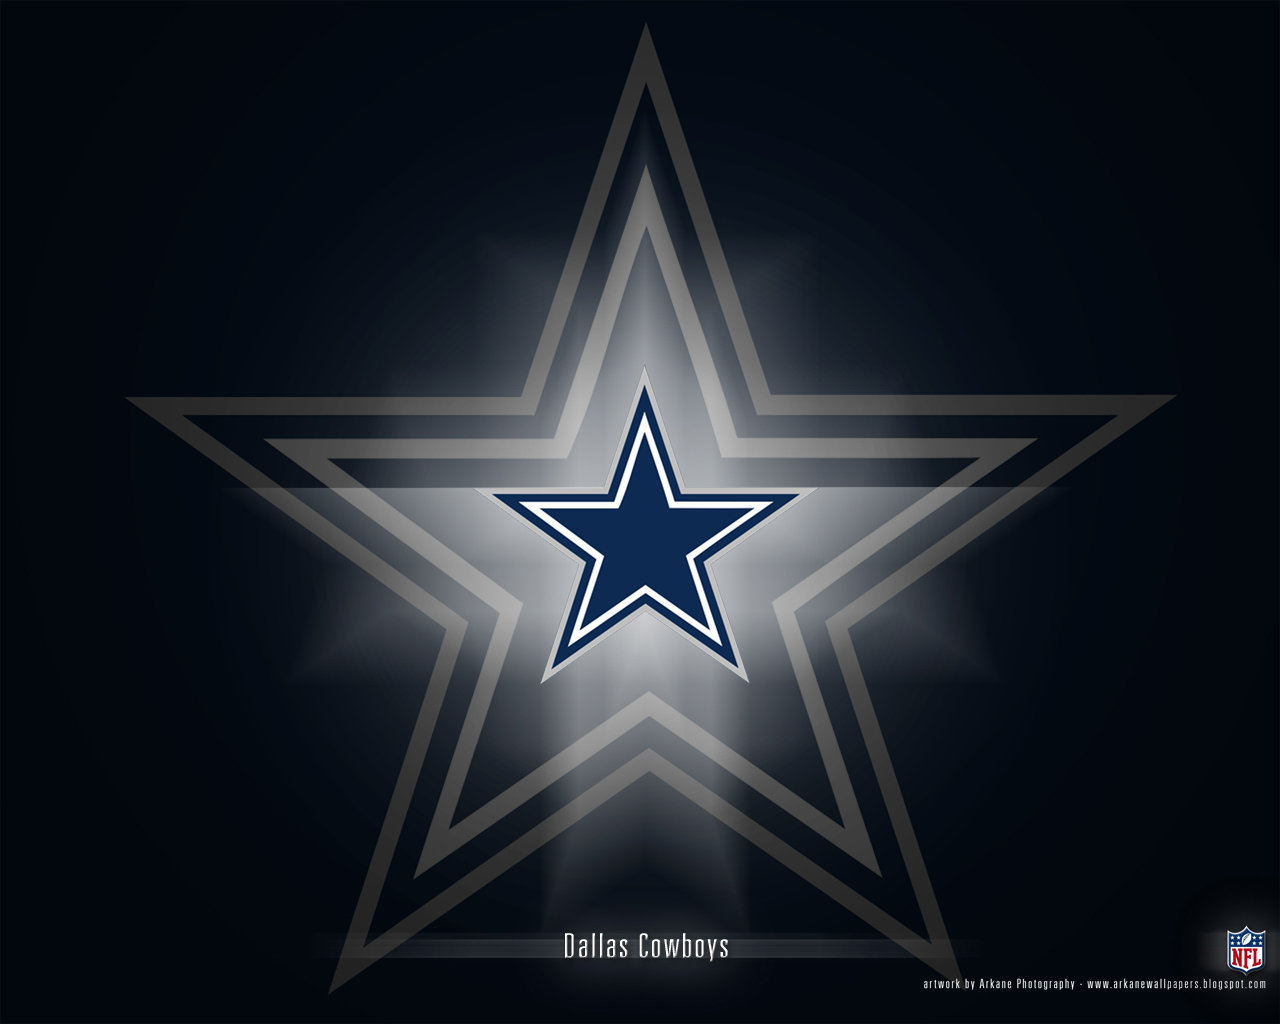 Dallas Cowboys Wallpapers Hd For Desktop Backgrounds